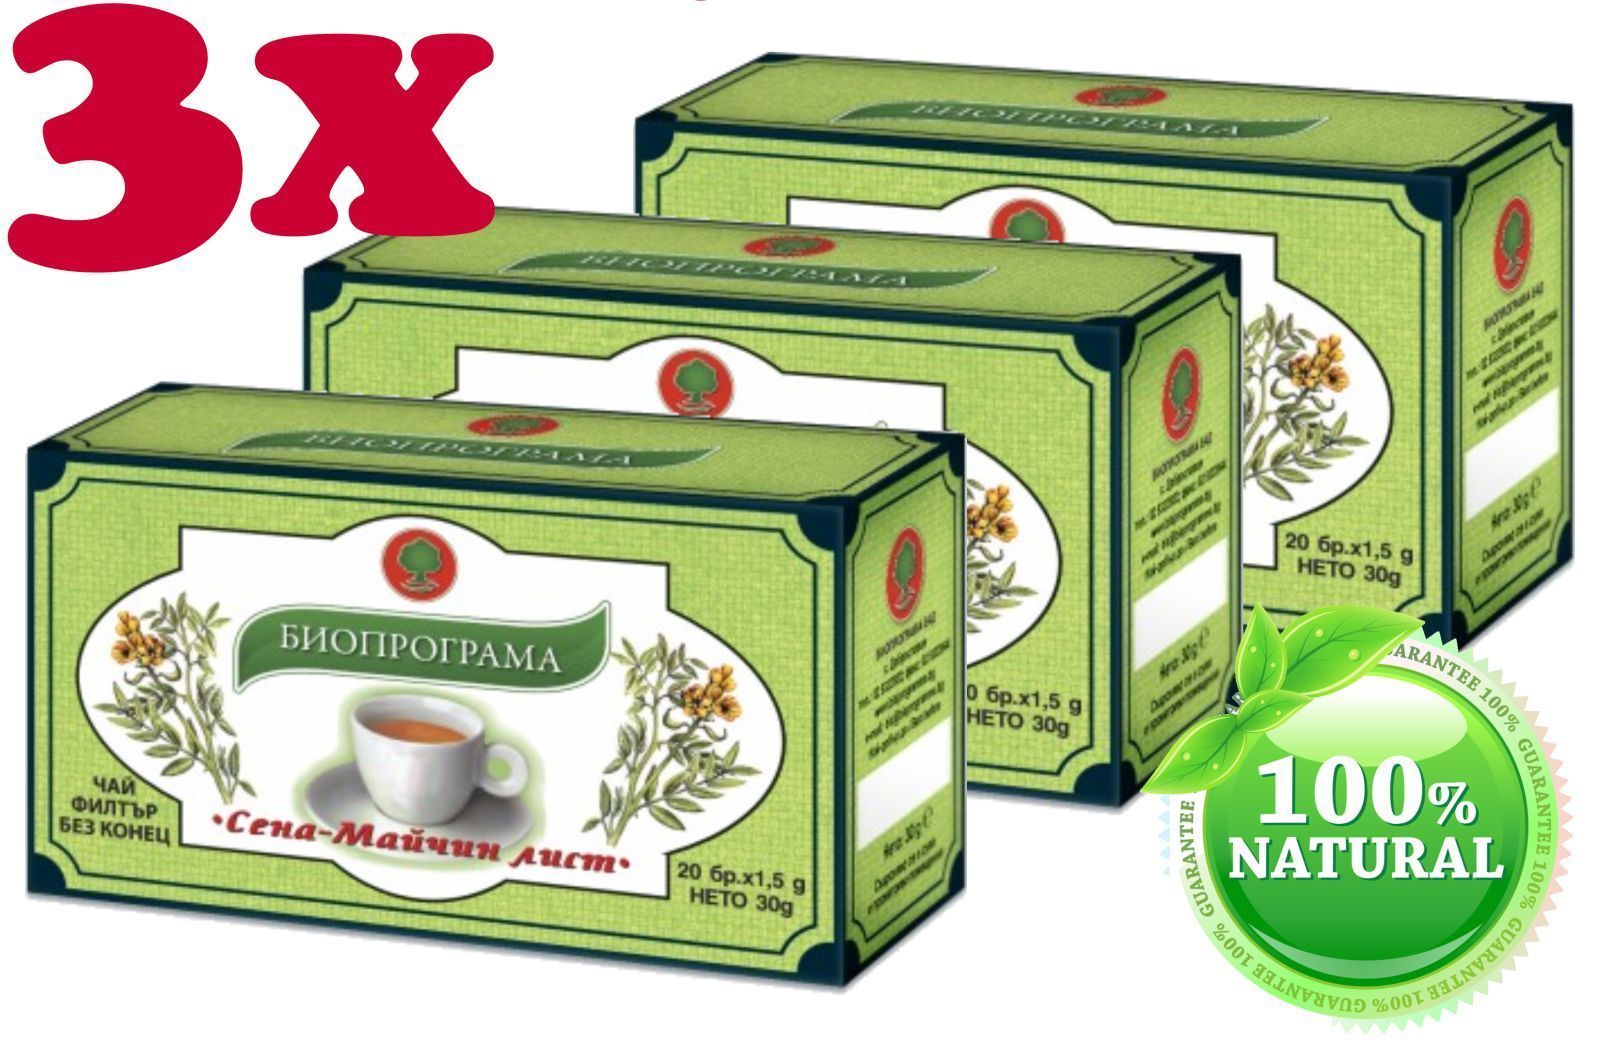 New TOP PRICE 3 BOXES SENNA TEA Colon Cleansing Laxative Detox Weight Loss 60 Bags Free Shipping